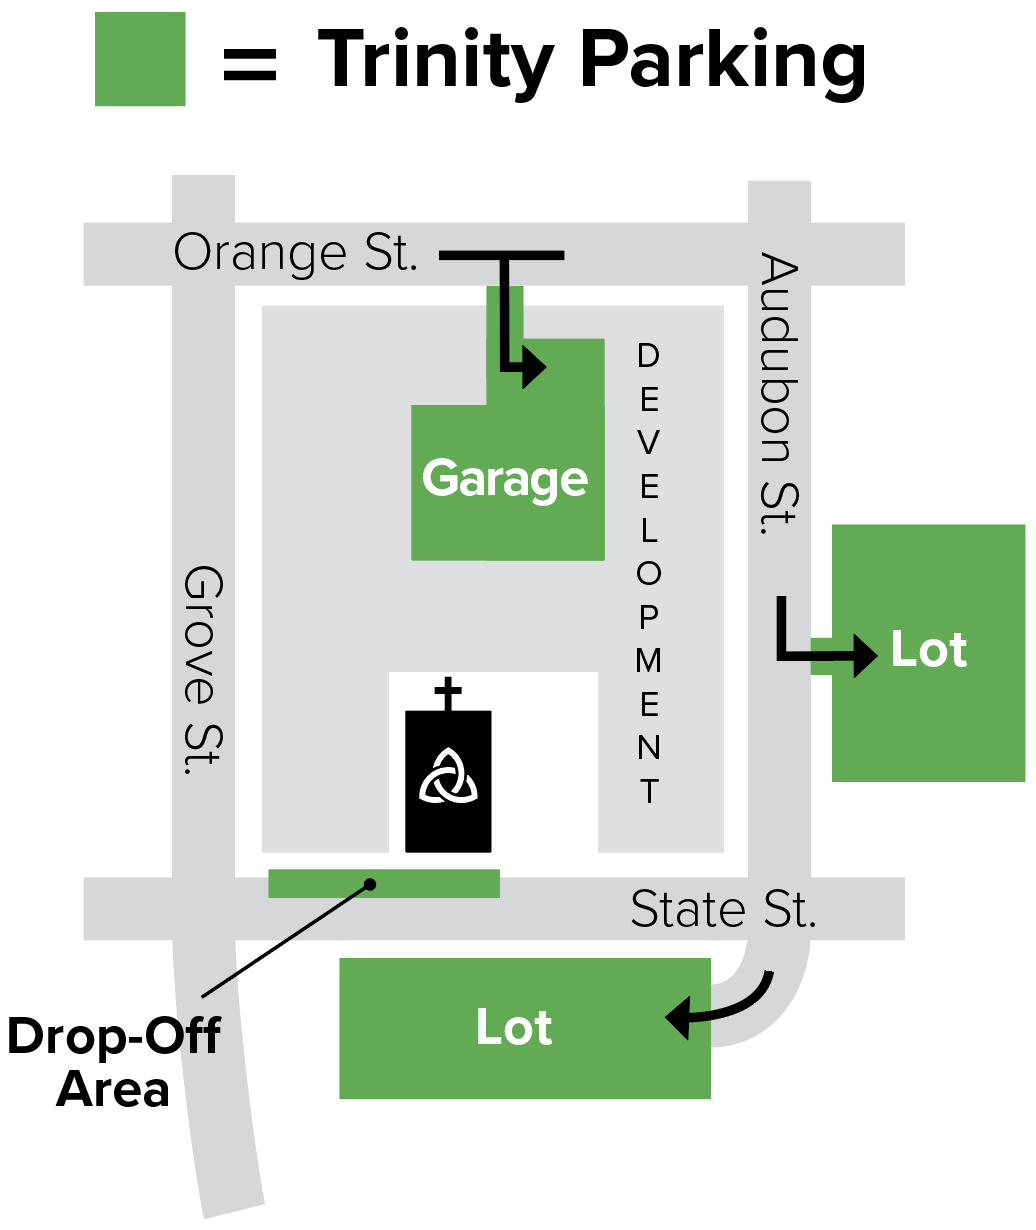 Trinity-Parking-Aug29.PNG